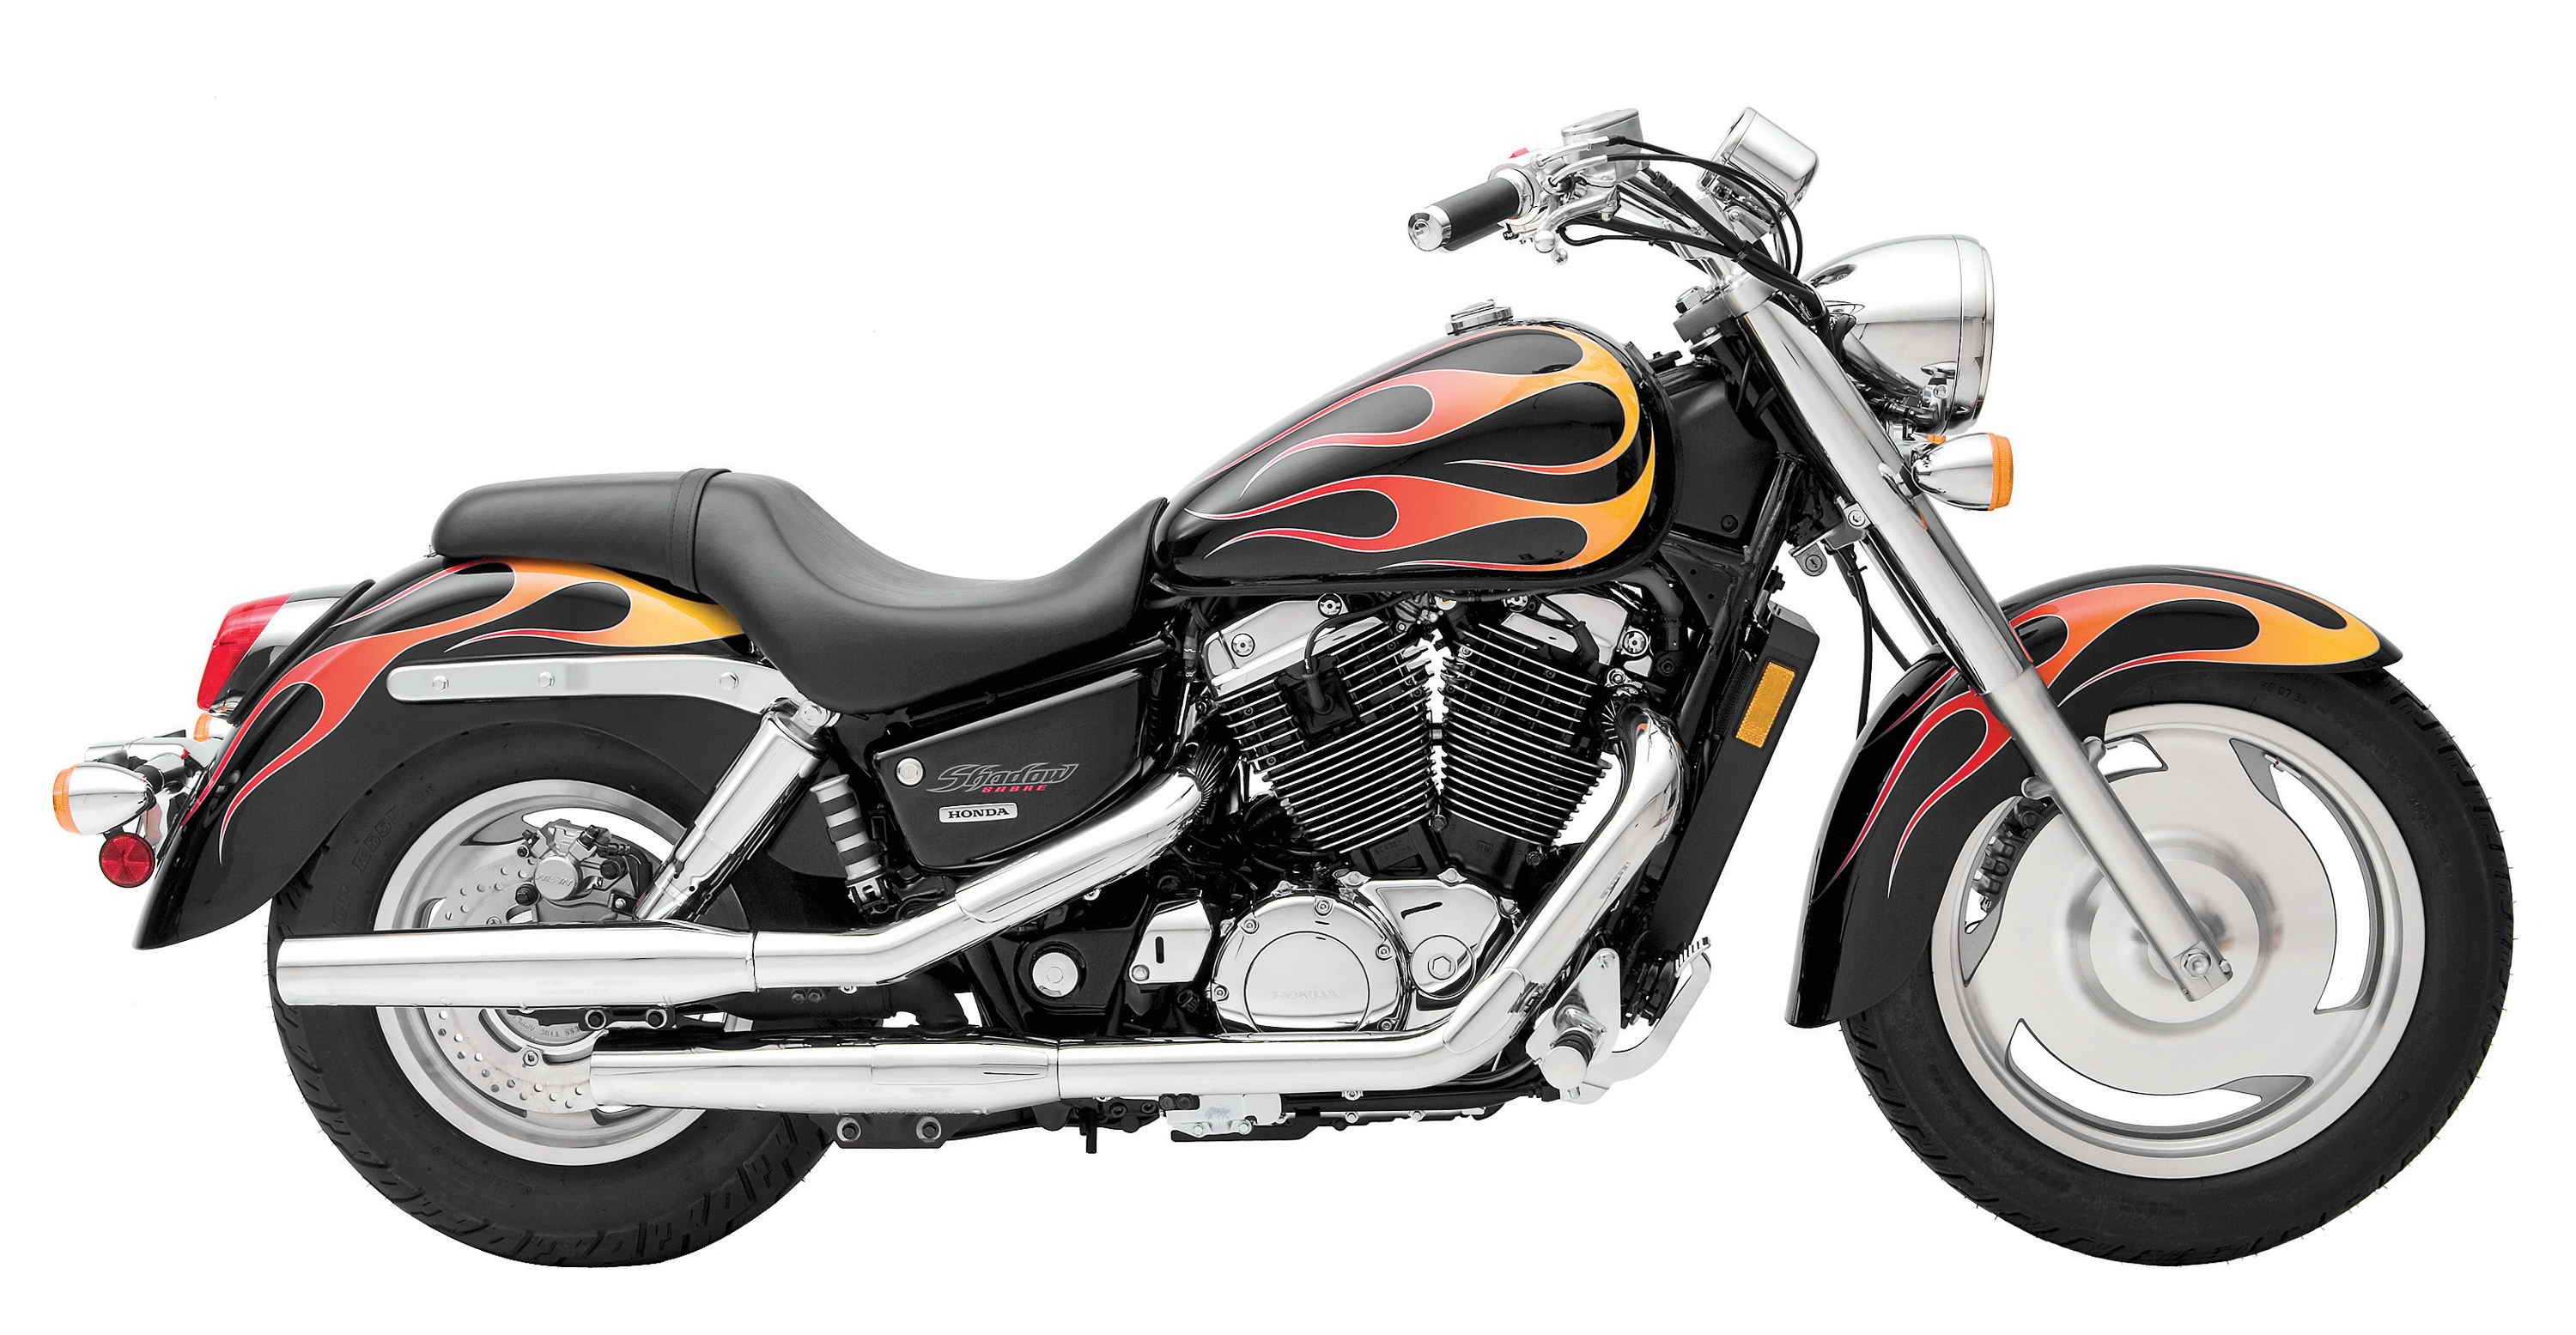 Honda Shadow 1100: photo, review, specifications, reviews 62